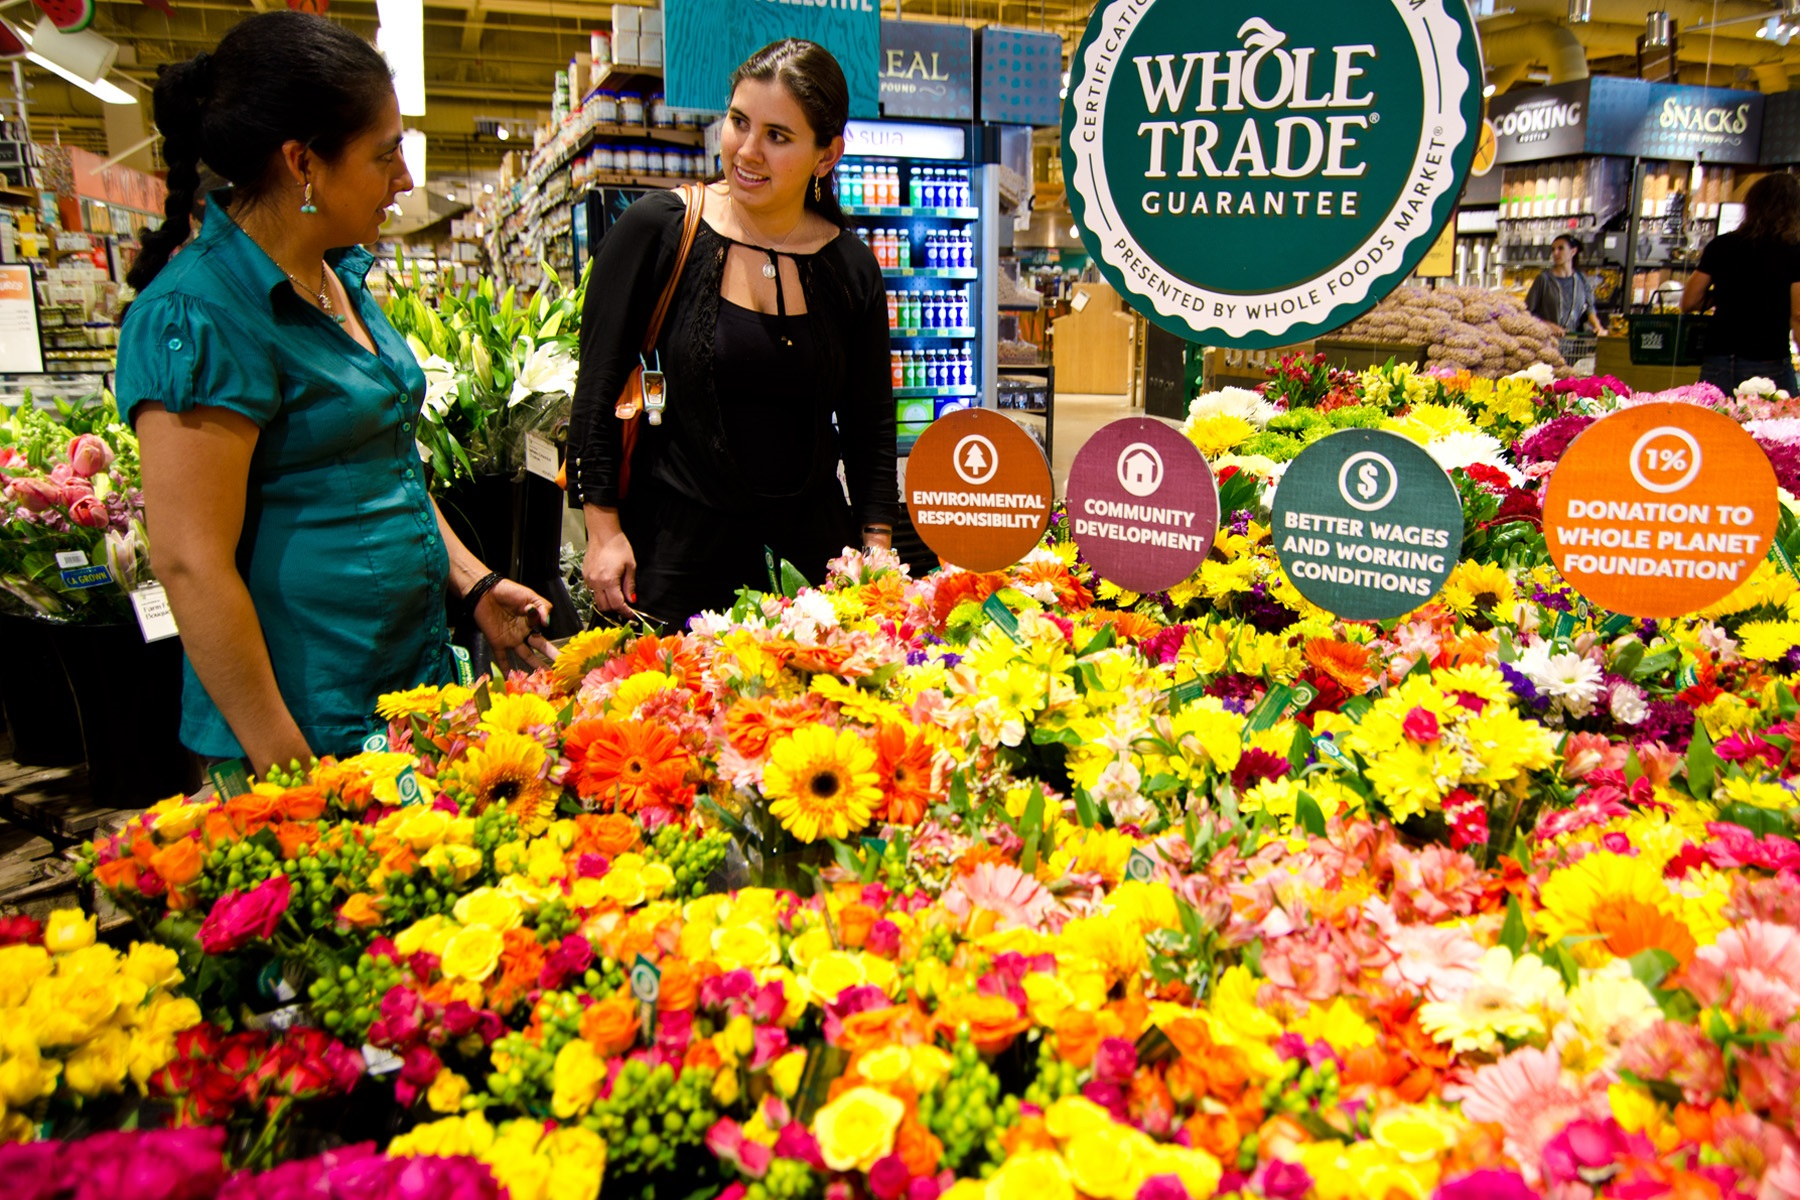 Lucia (left) and her co-worker Gabi (right) get to see how Whole Trade® flowers are displayed in the store.